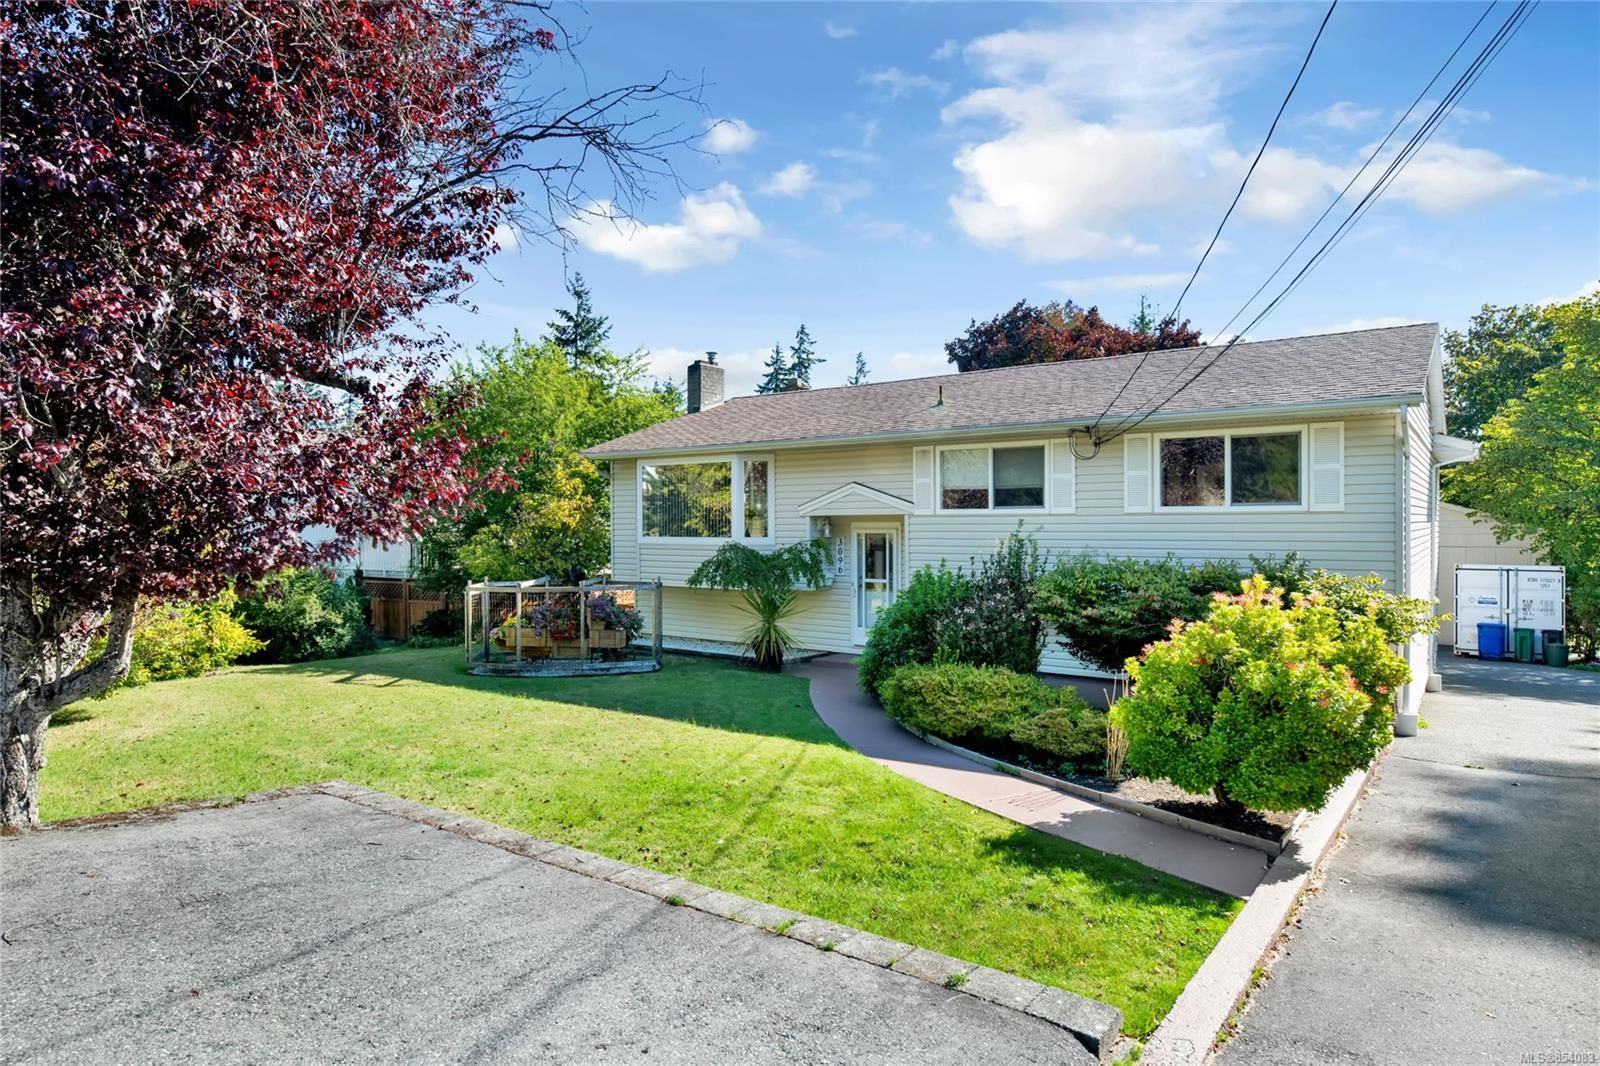 Main Photo: 3096 Rock City Rd in : Na Departure Bay House for sale (Nanaimo)  : MLS®# 854083